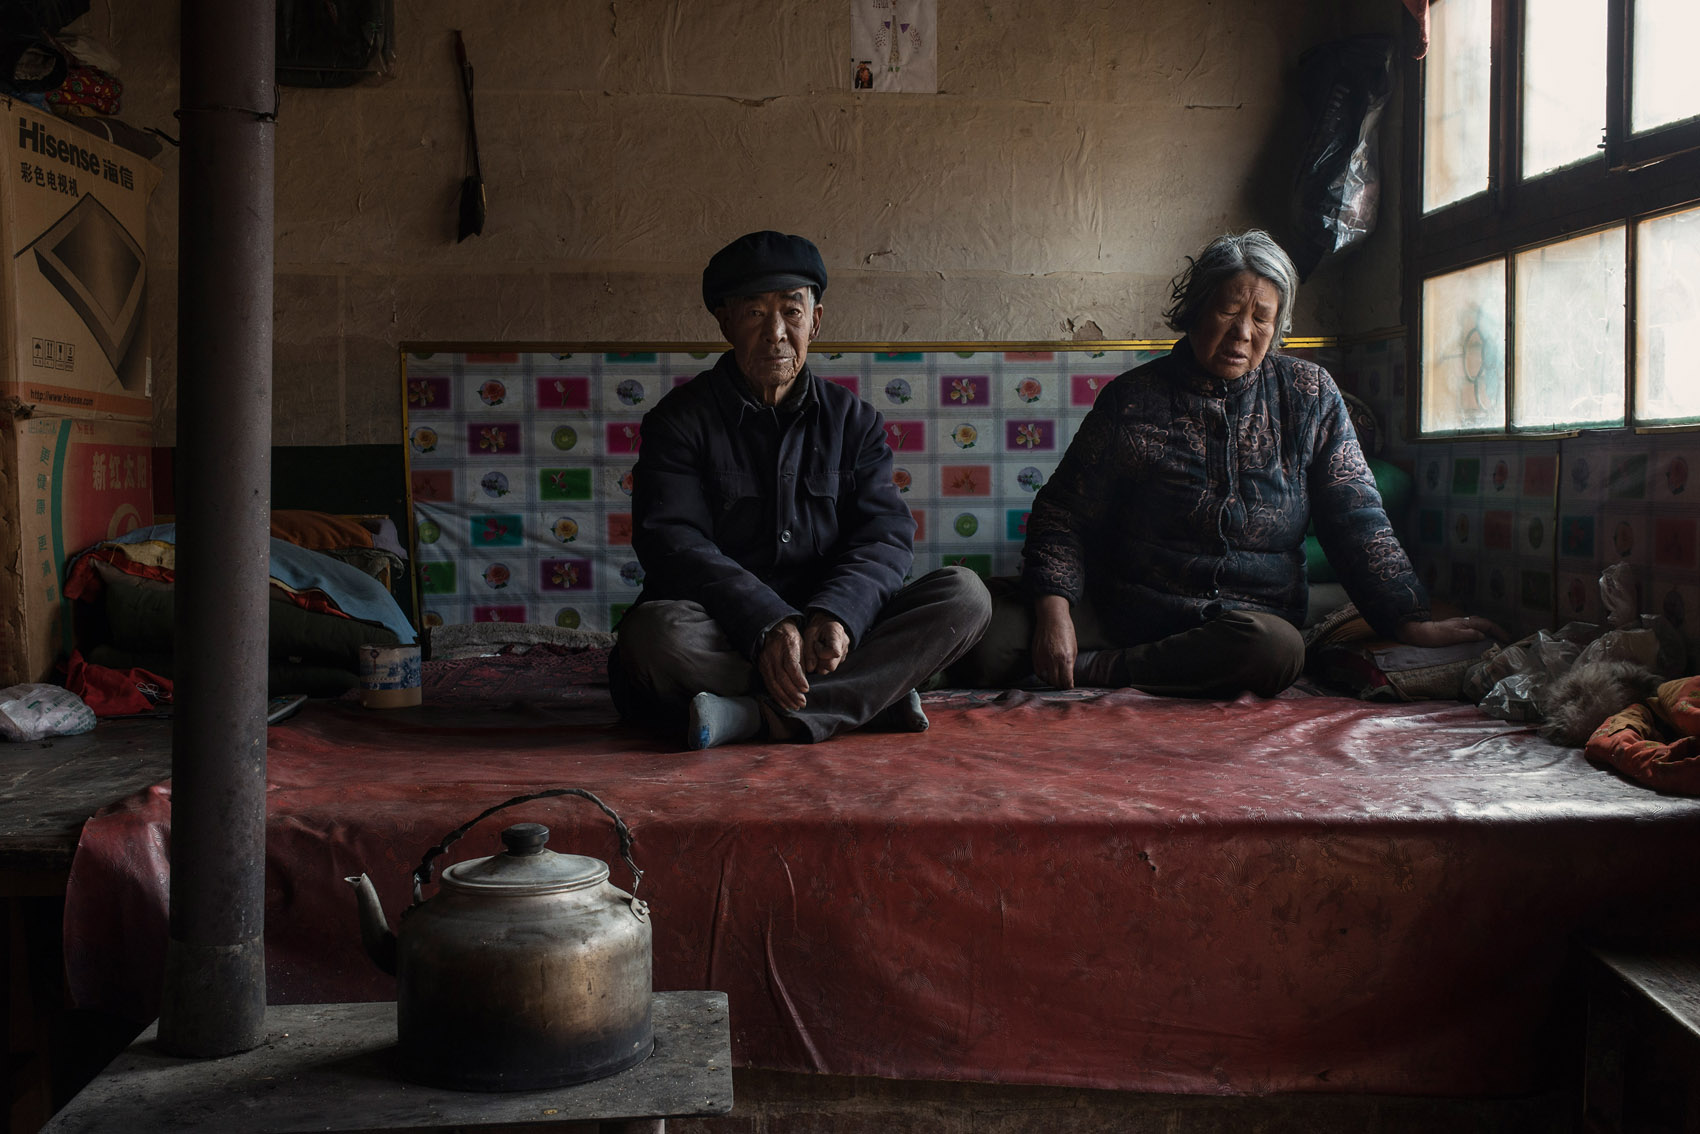 Baituo village  72 years old Yao Gouwa, with his wife,Liu Yinxiang, also 72. She is pain from hypertension. Liu is in pain from hypertension, a very common affliction among elders in the region.